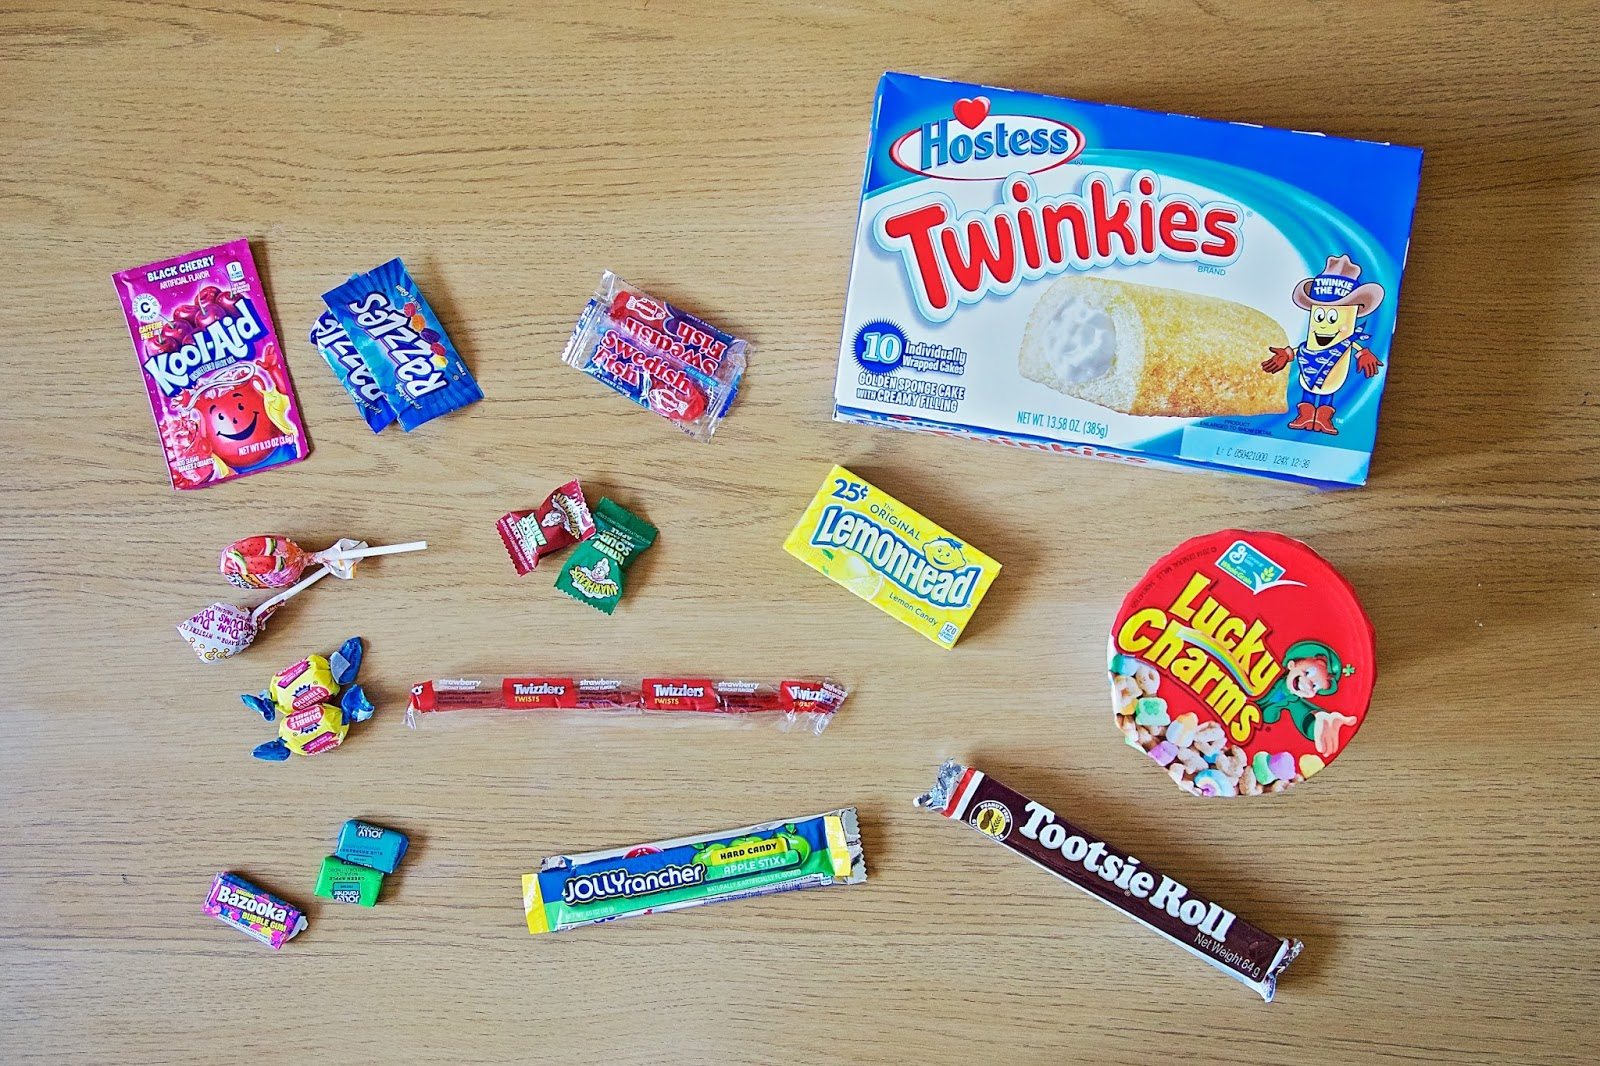 American candy spread out on the table